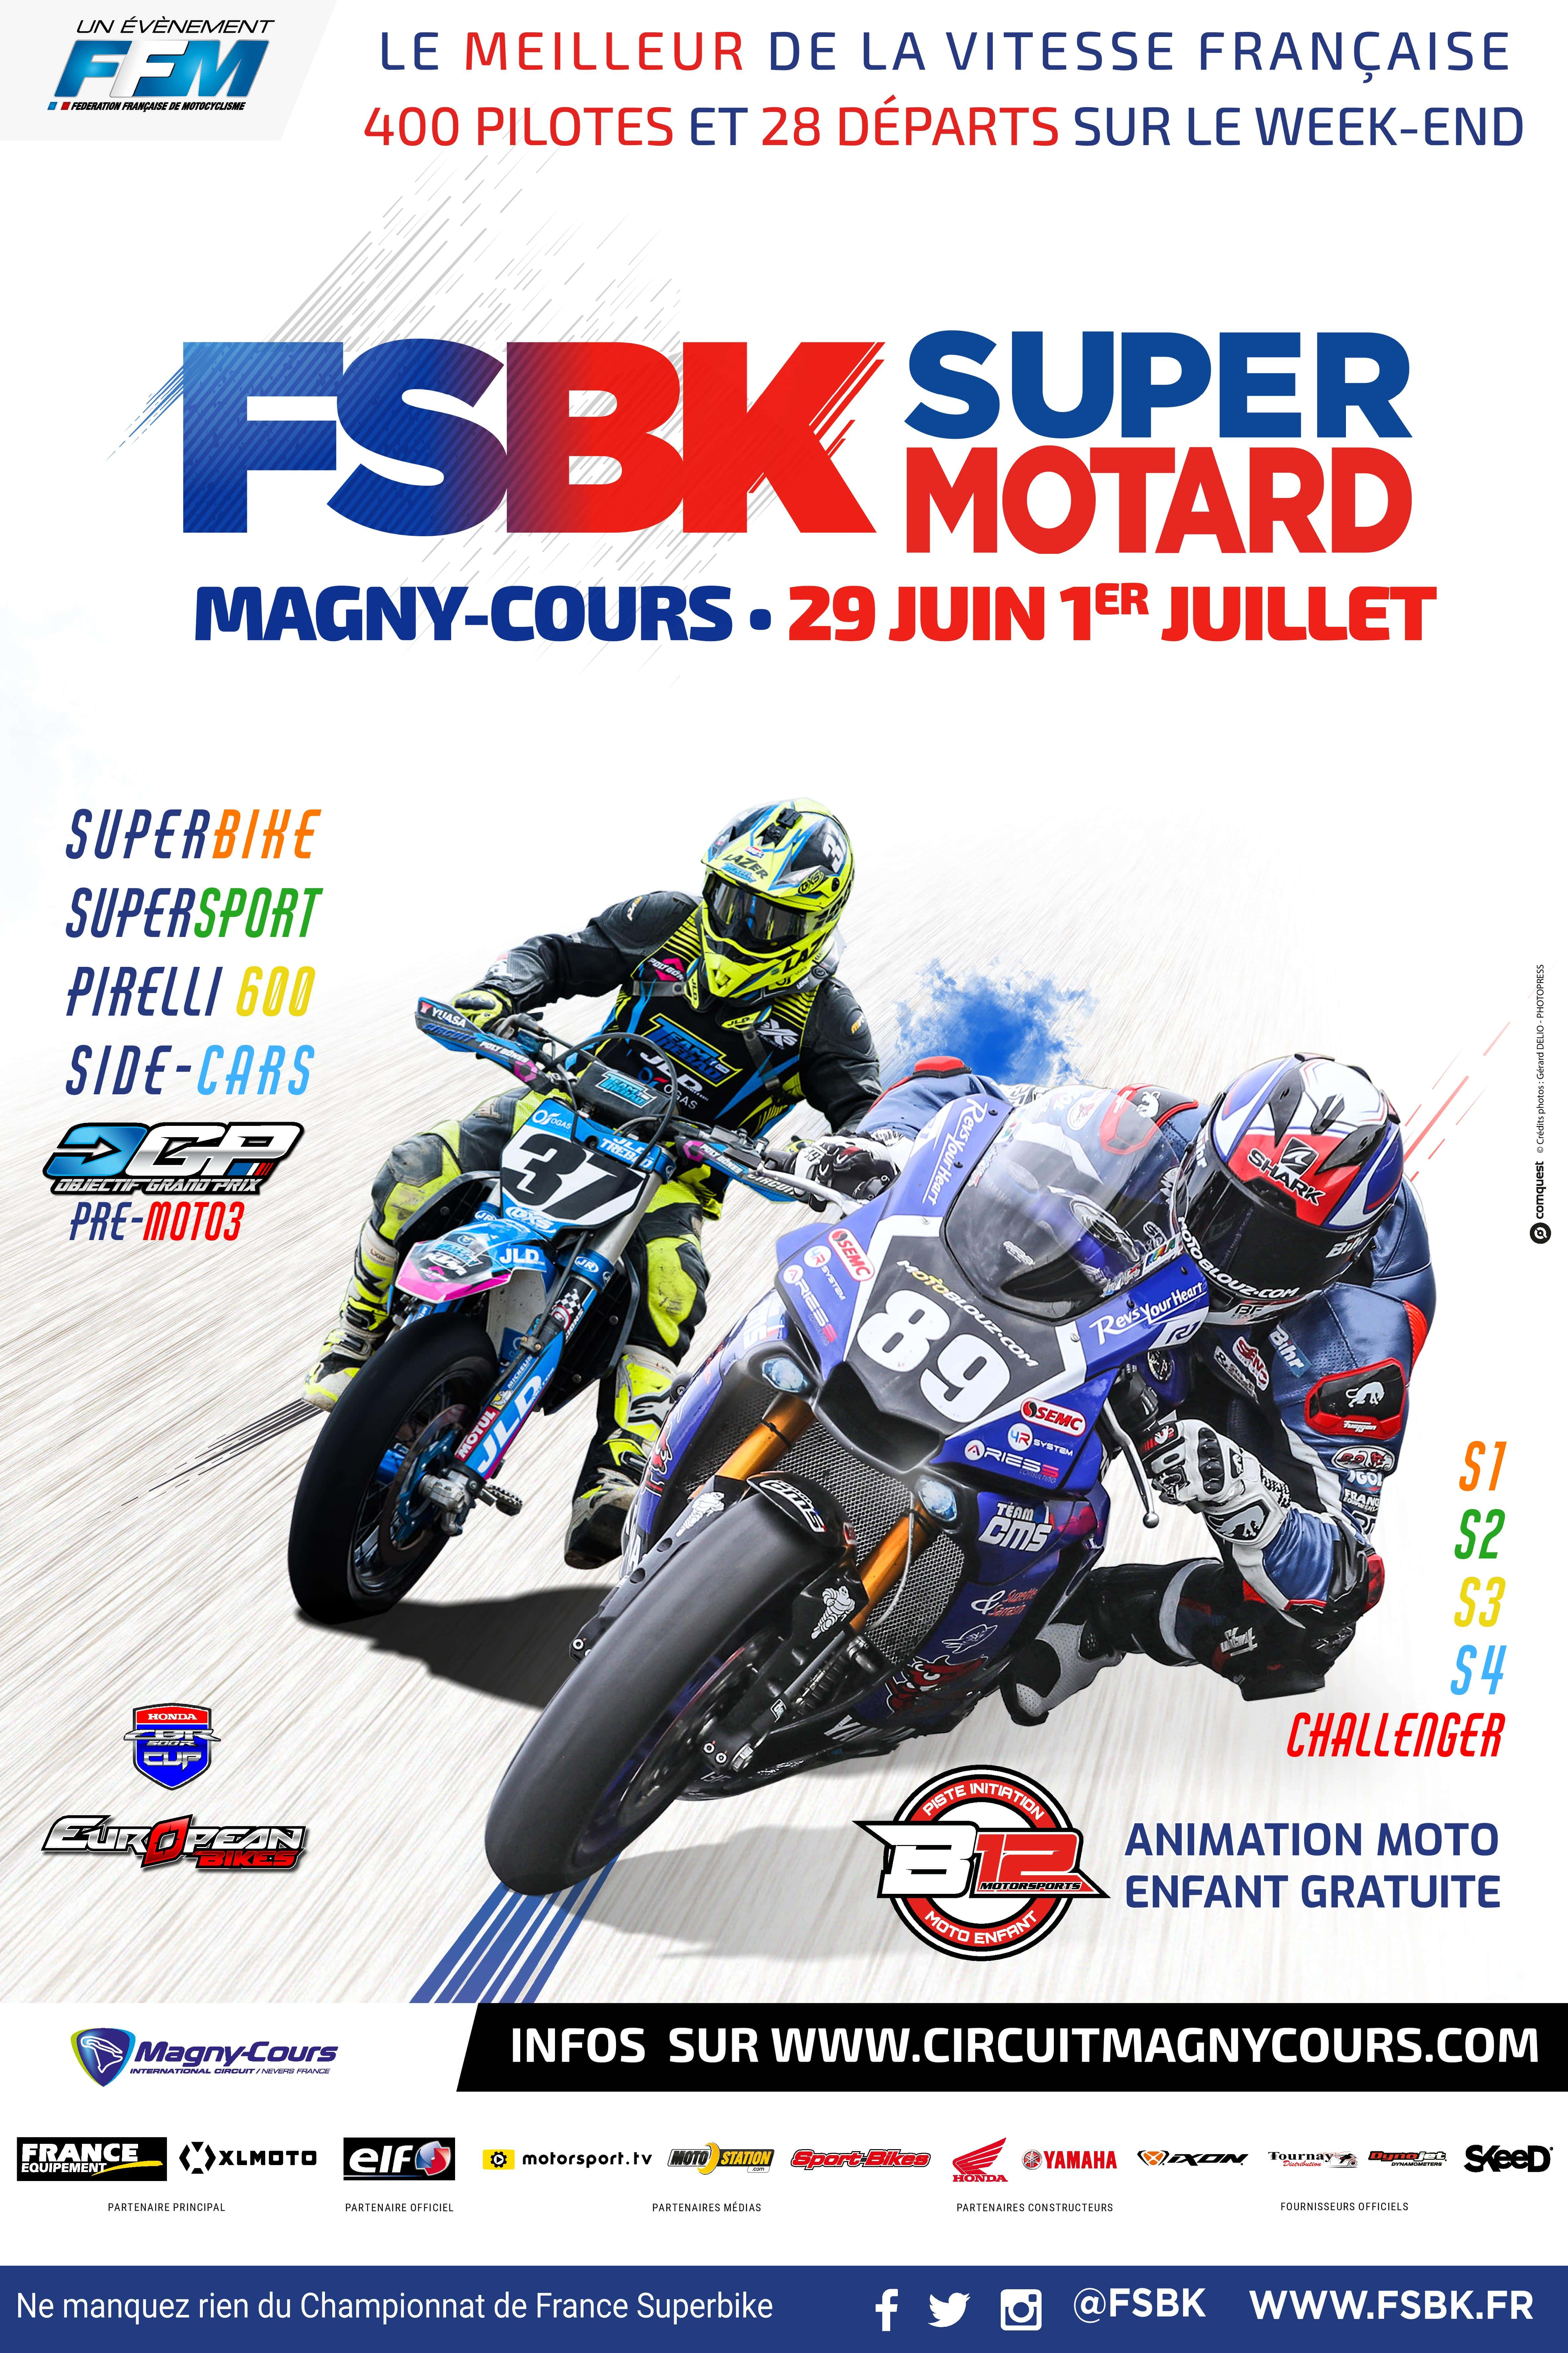 fsbk magny-cours 2018